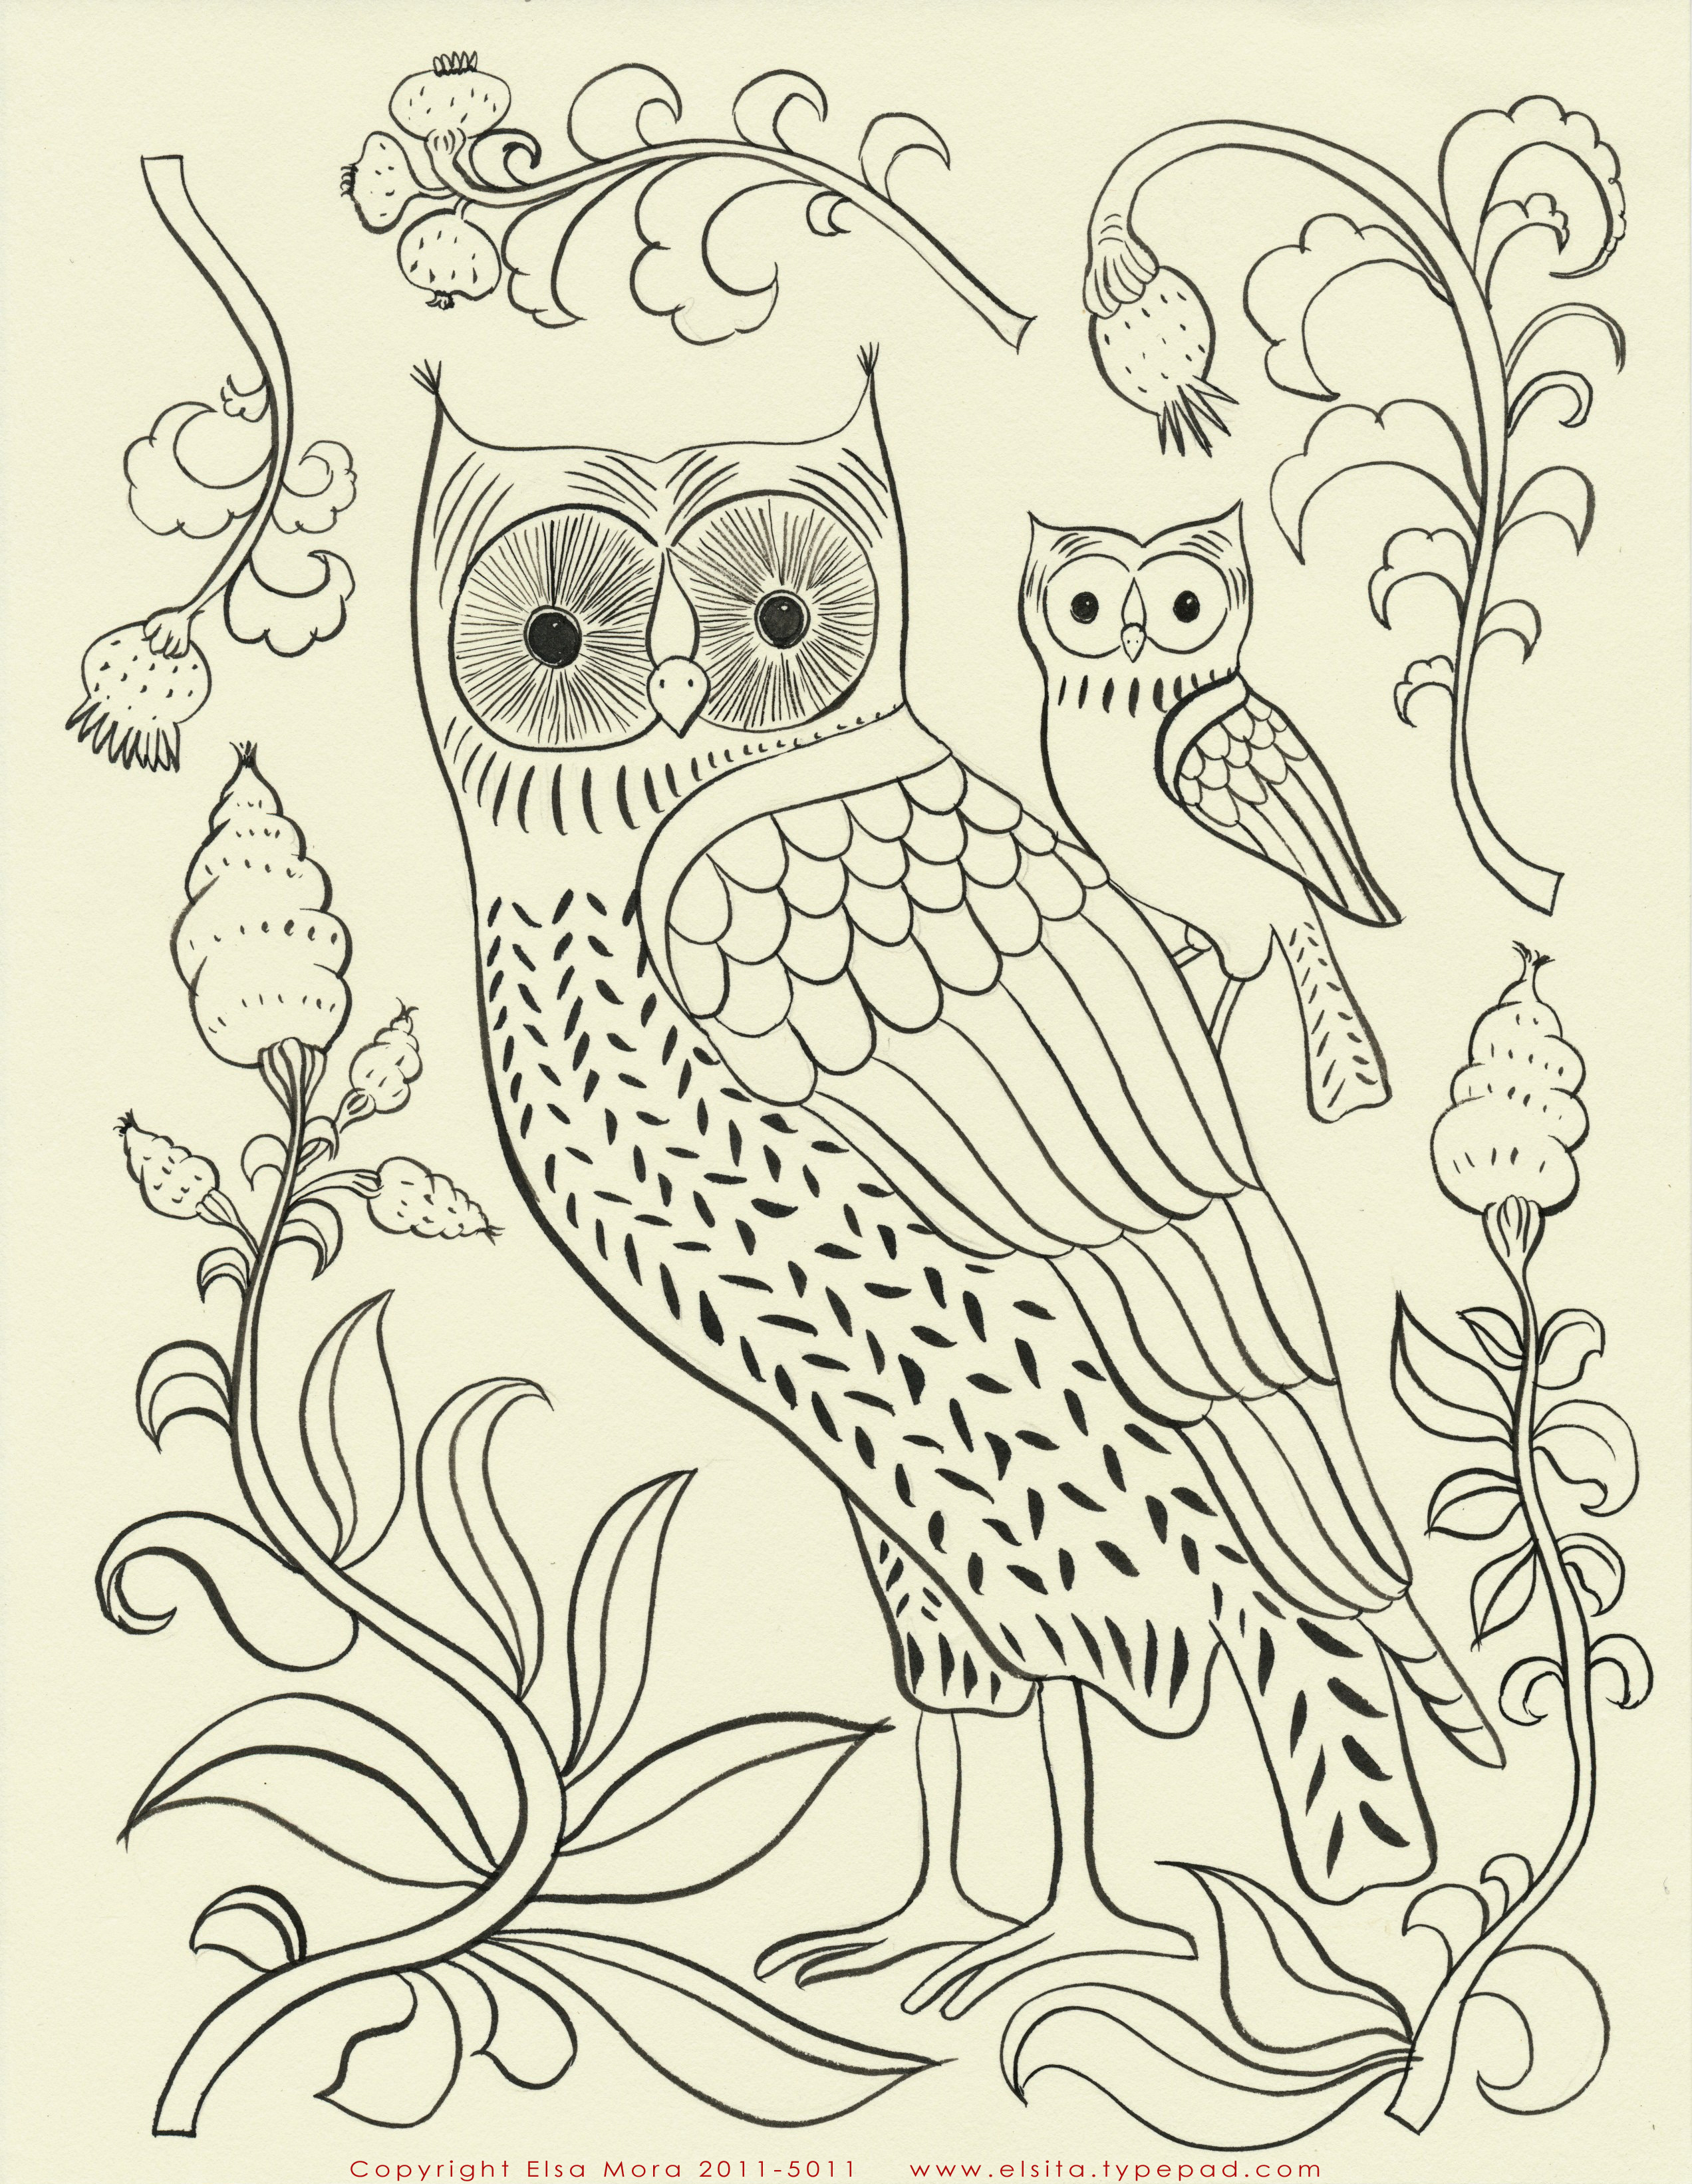 Bird Embroidery Pattern Elsa Mora Two Free Embroidery Patterns For You